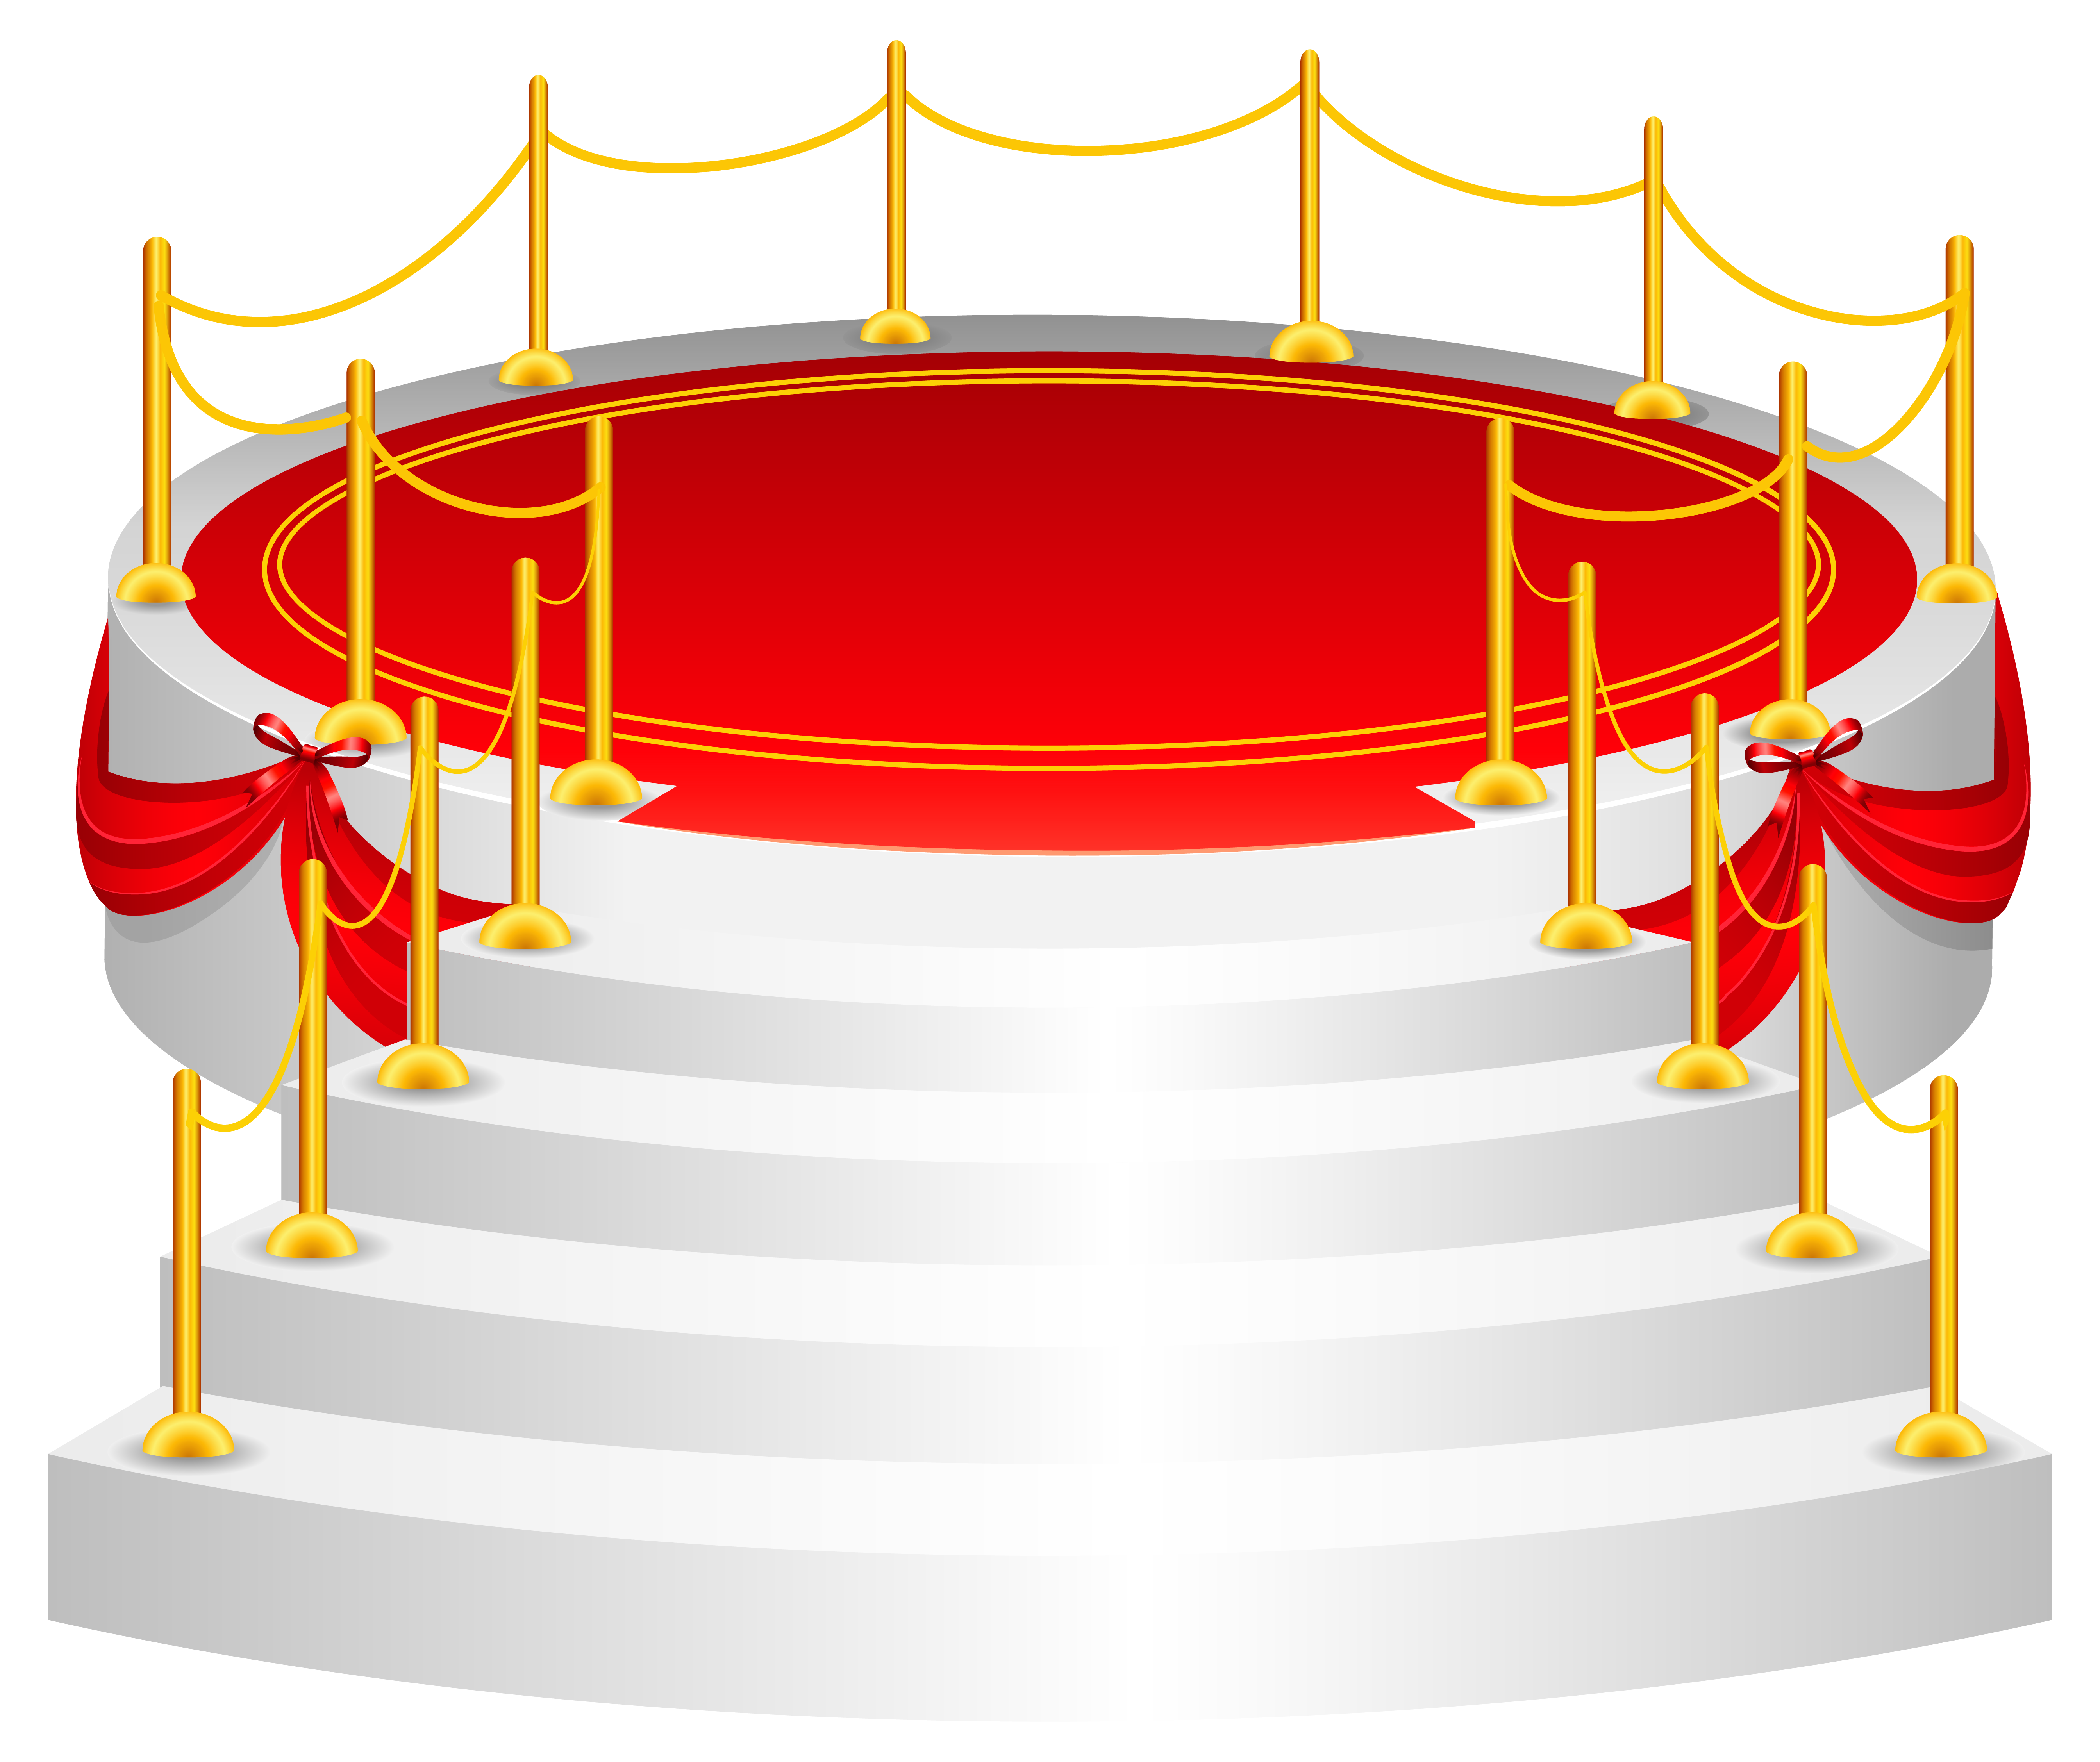 graphic royalty free library Png clip art image. Stage clipart